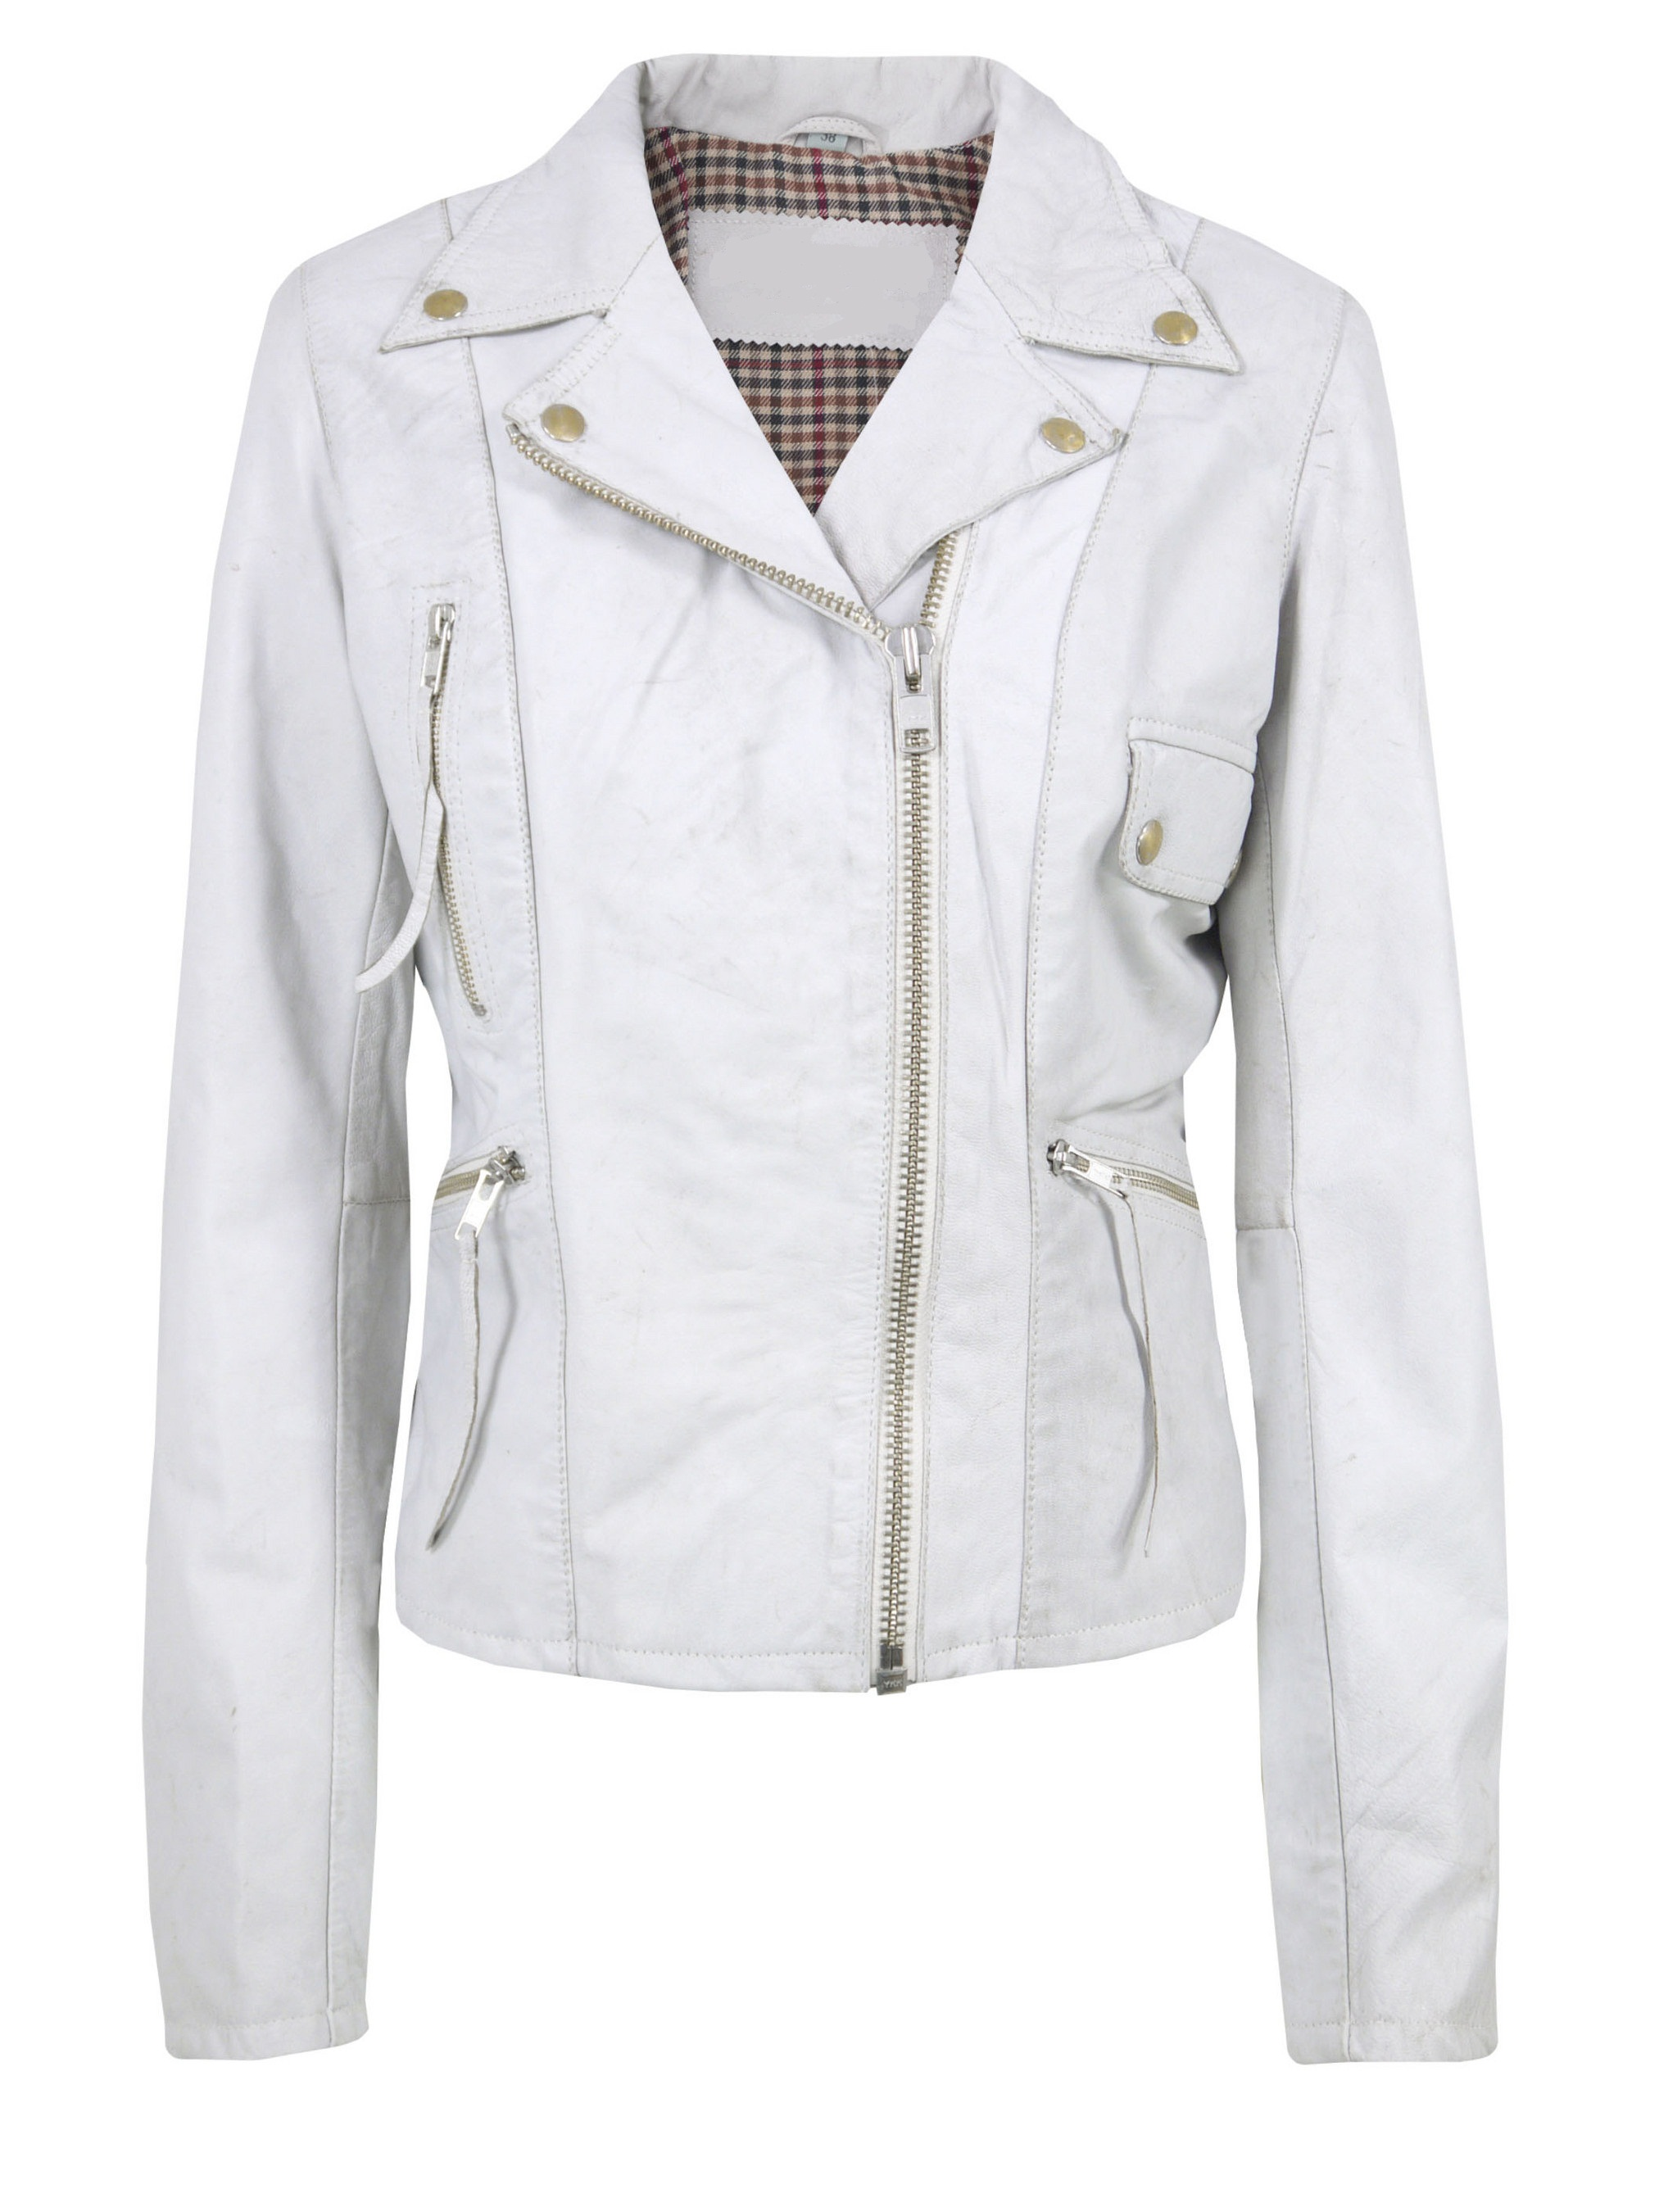 Free shipping and returns on Women's White Coats, Jackets & Blazers at arifvisitor.ga